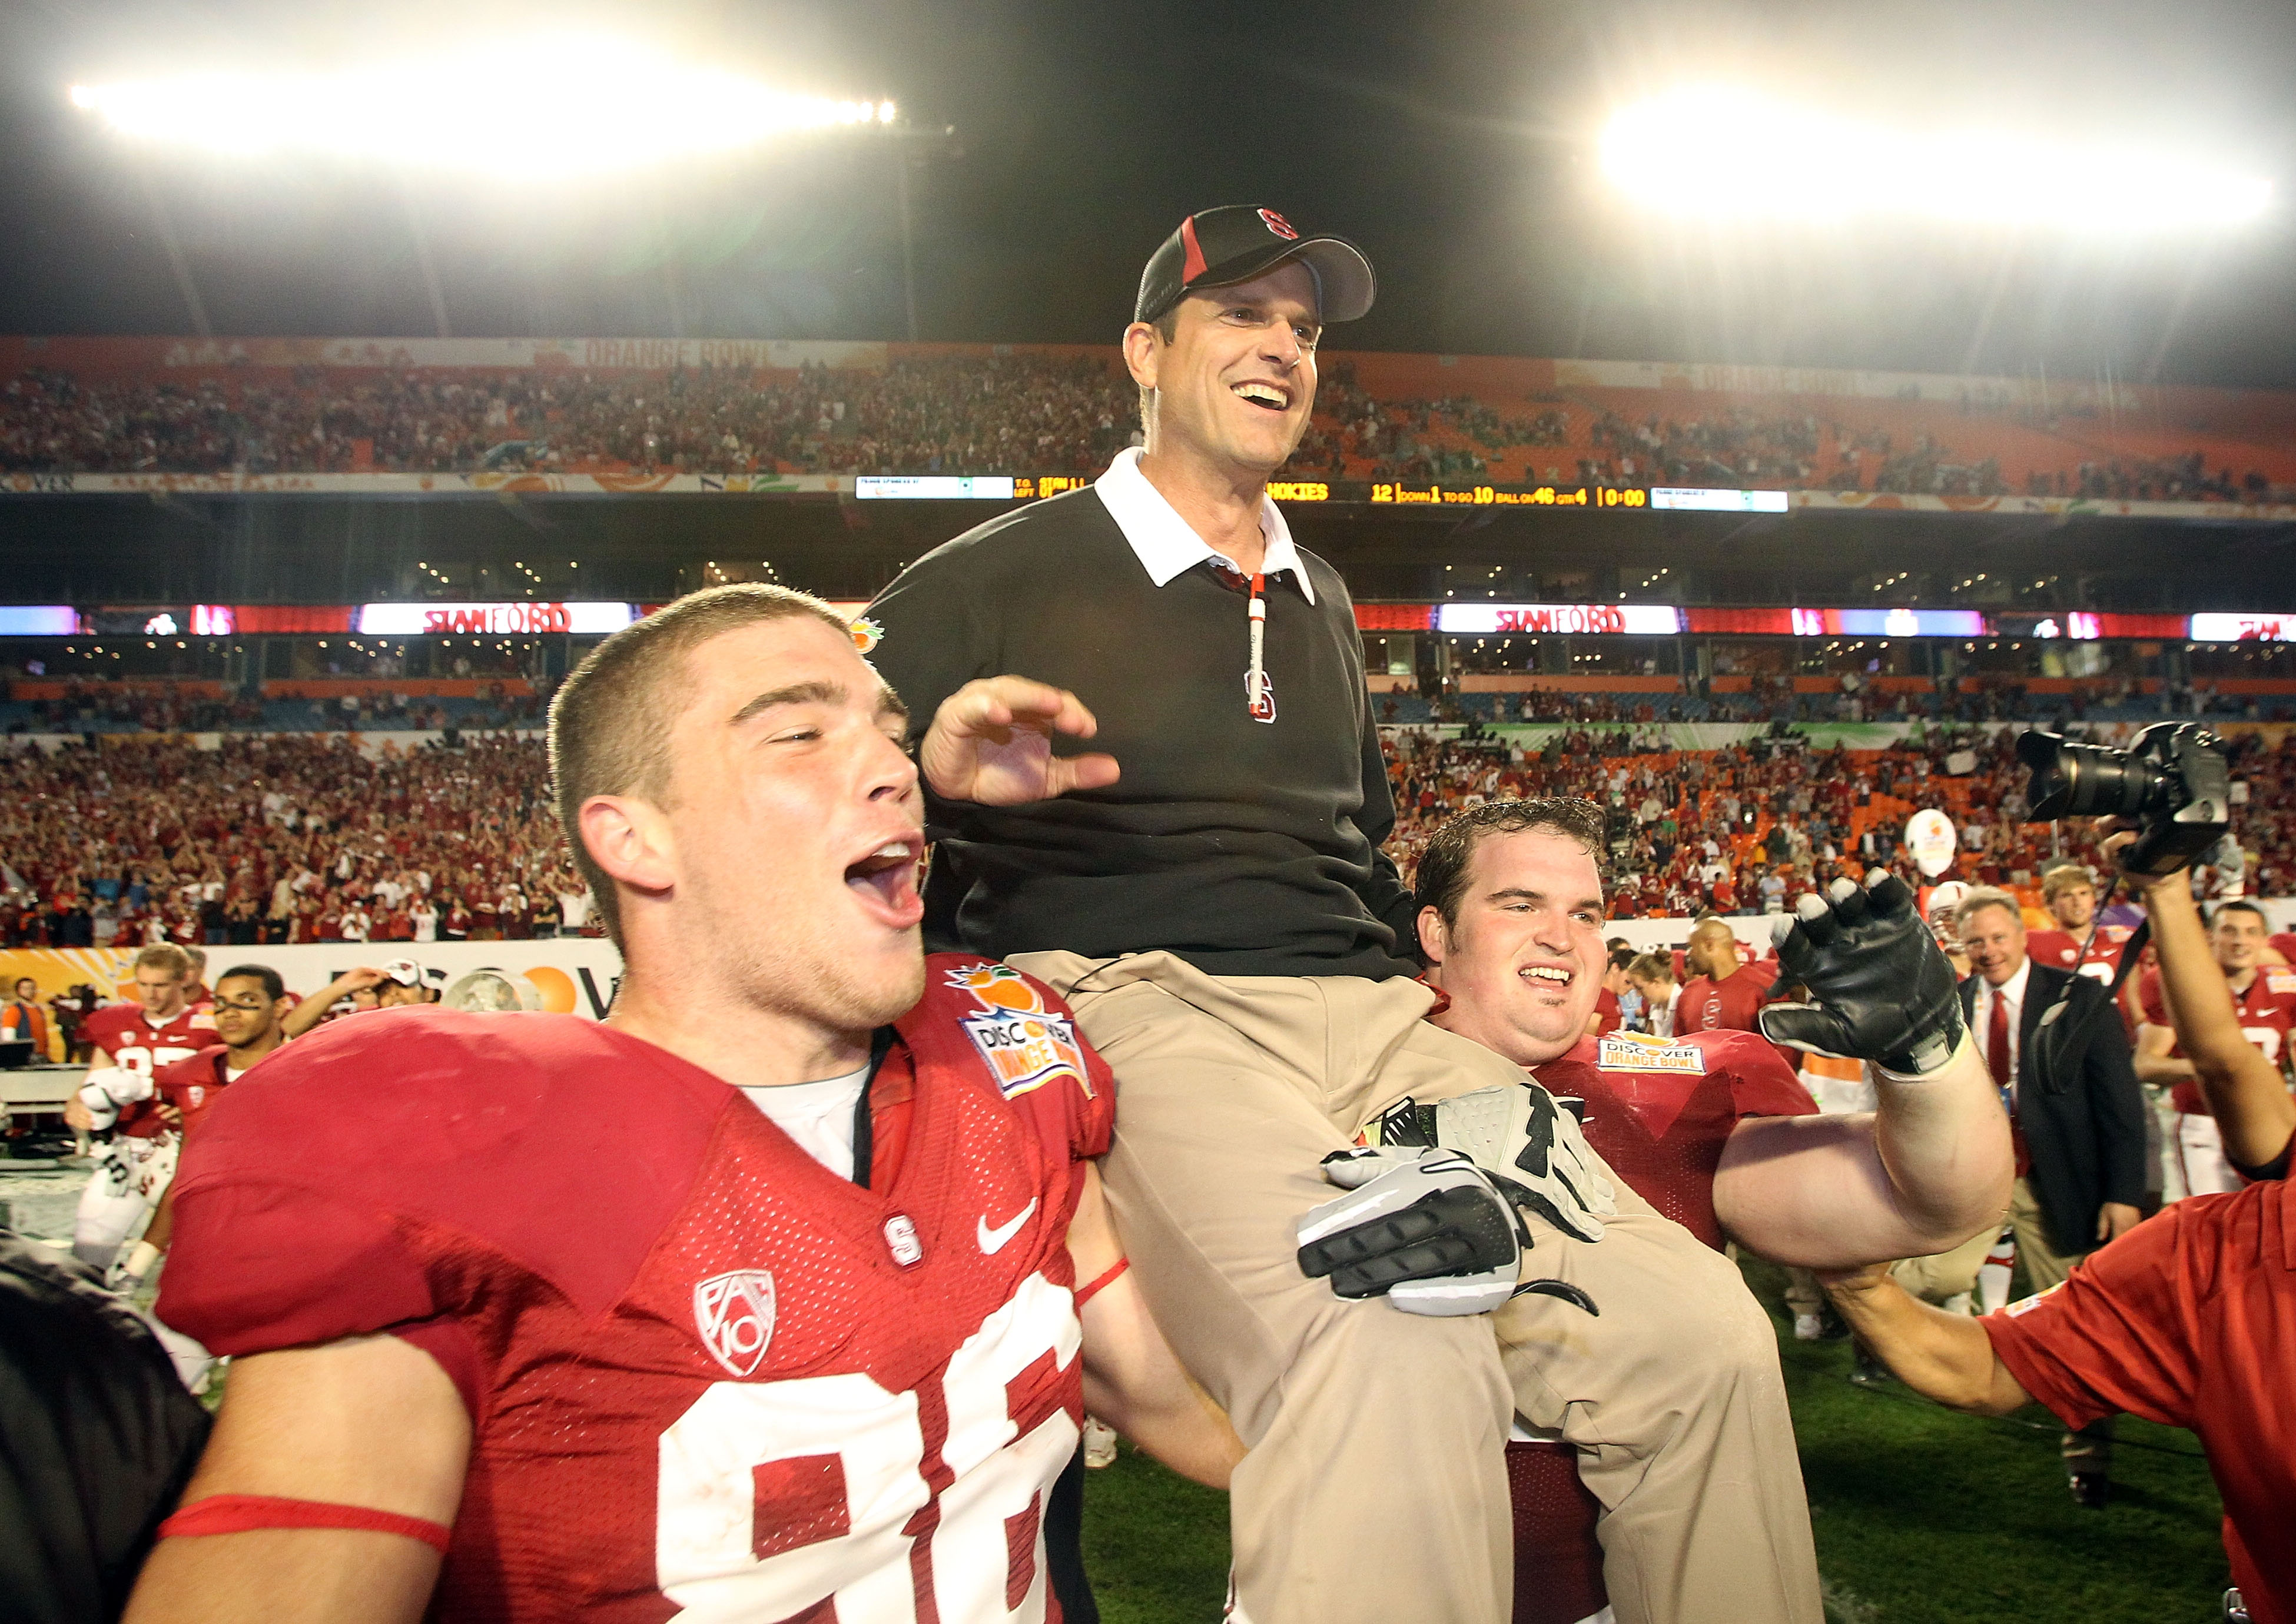 MIAMI, FL - JANUARY 03:  Head coach Jim Harbaugh of the Stanford Cardinal celebrates as he is lifted up by his players including Zach Ertz #86 (L) after Stanford won 40-12 against the Virginai Tech Hokies during the 2011 Discover Orange Bowl at Sun Life S